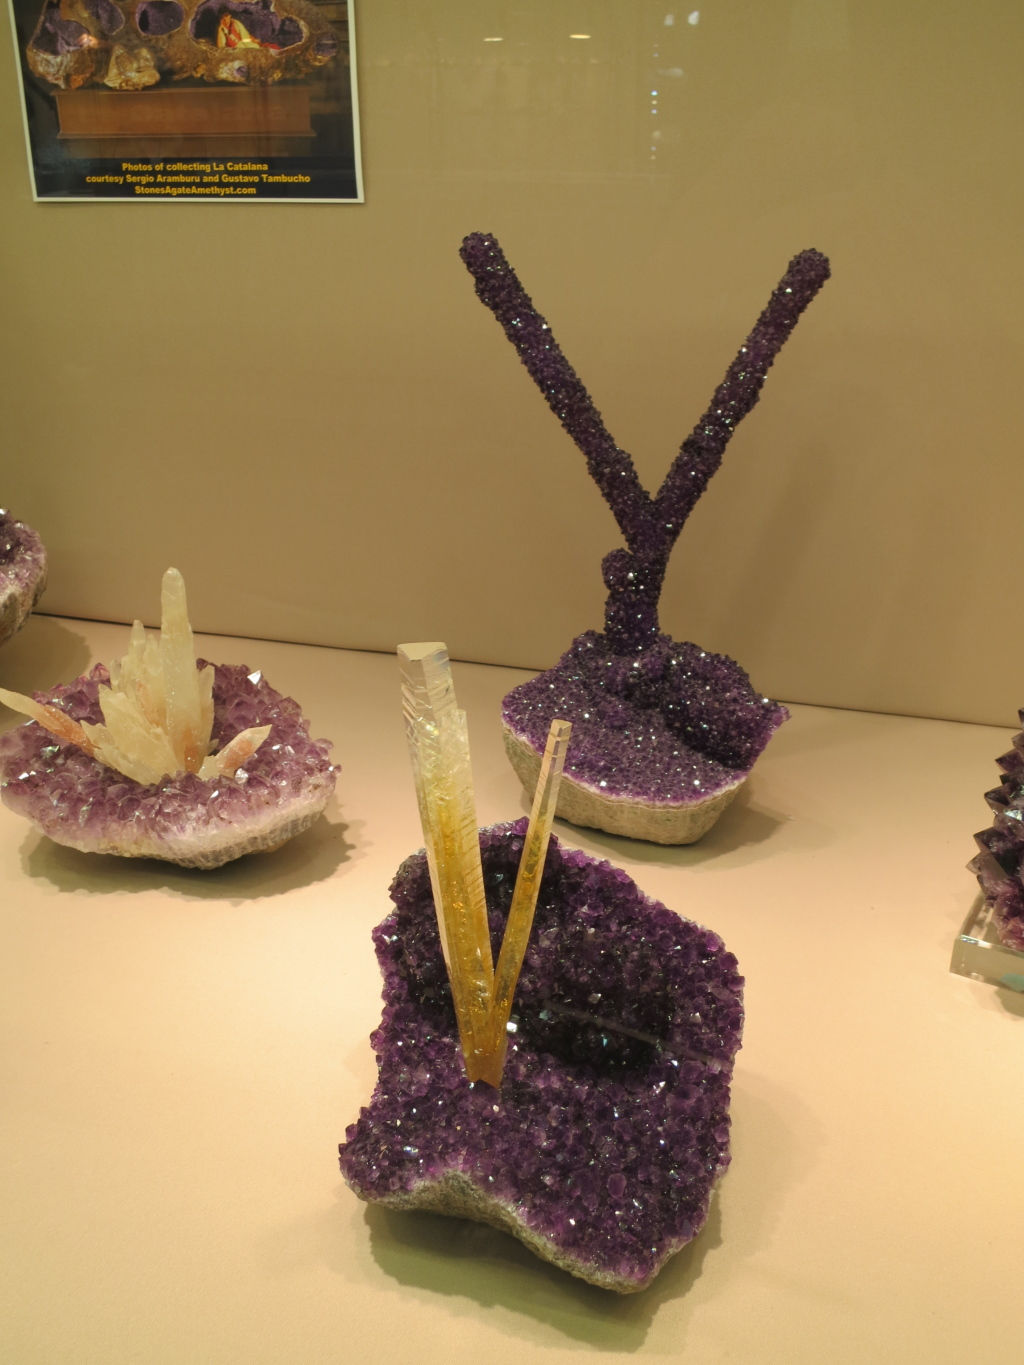 Spectacular Calcites on Amethyst from Uruguay which have been removed from geodes.